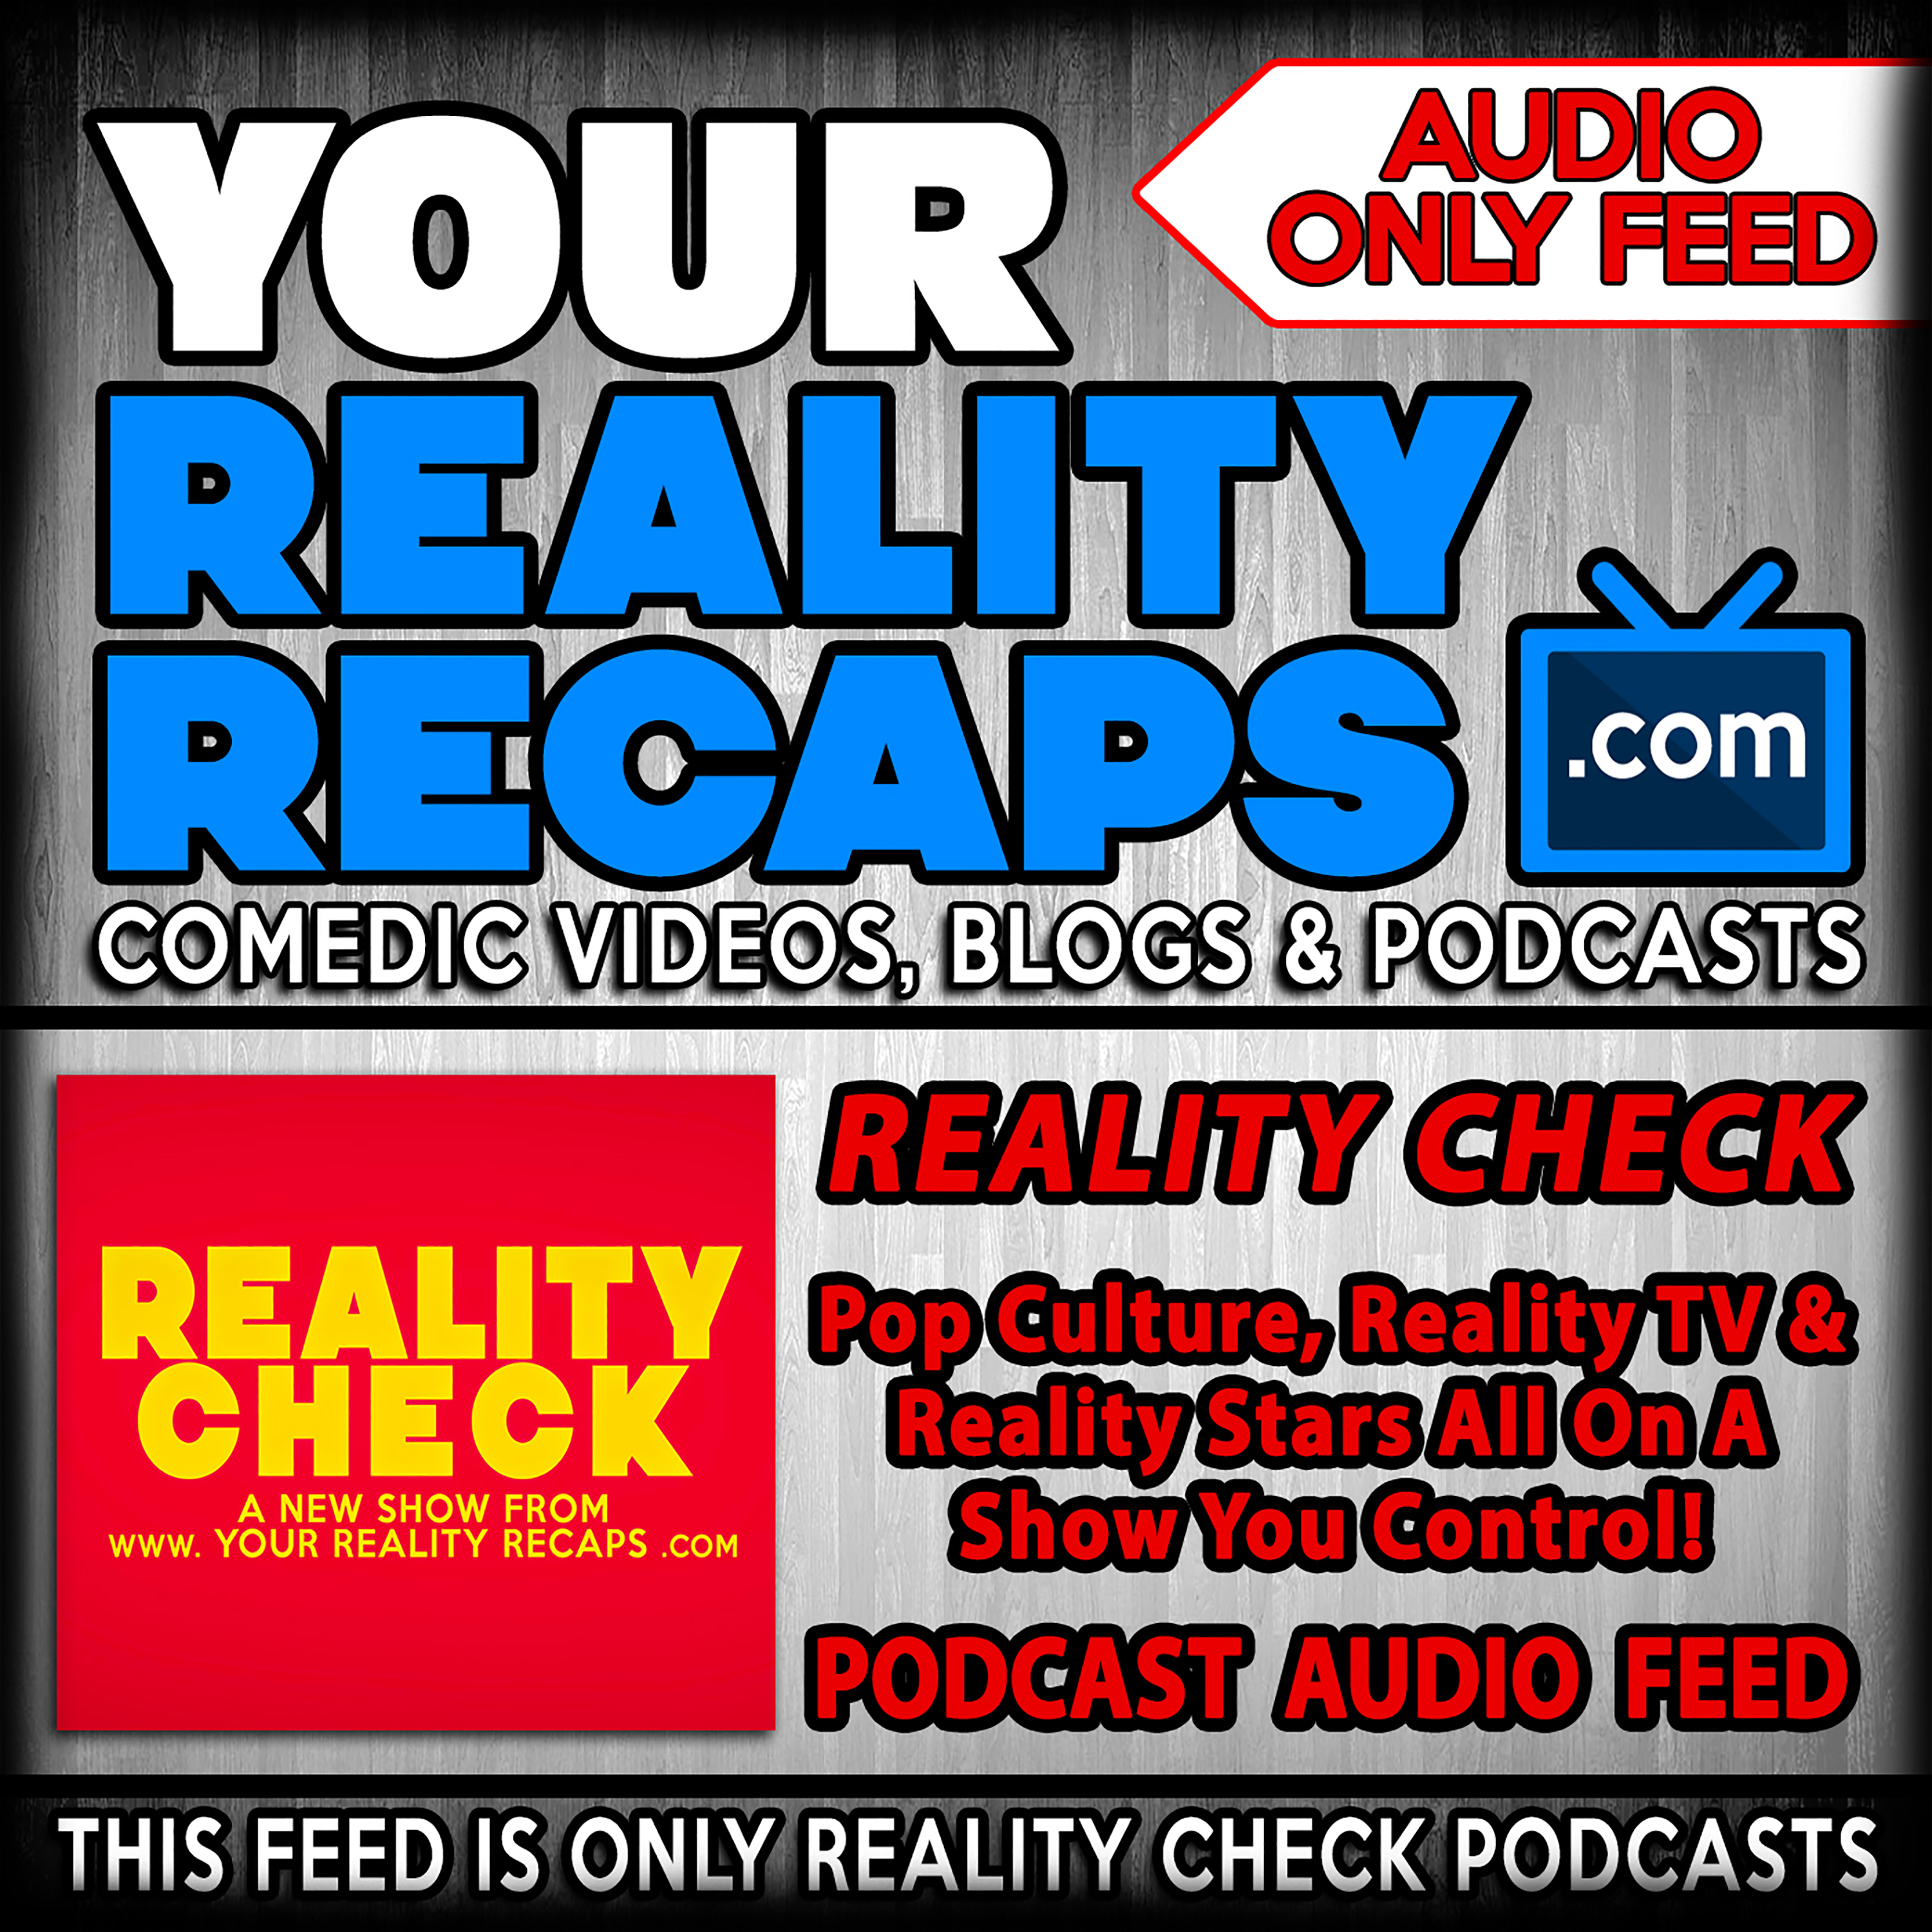 Your Reality Recaps:  Reality Check Podcast